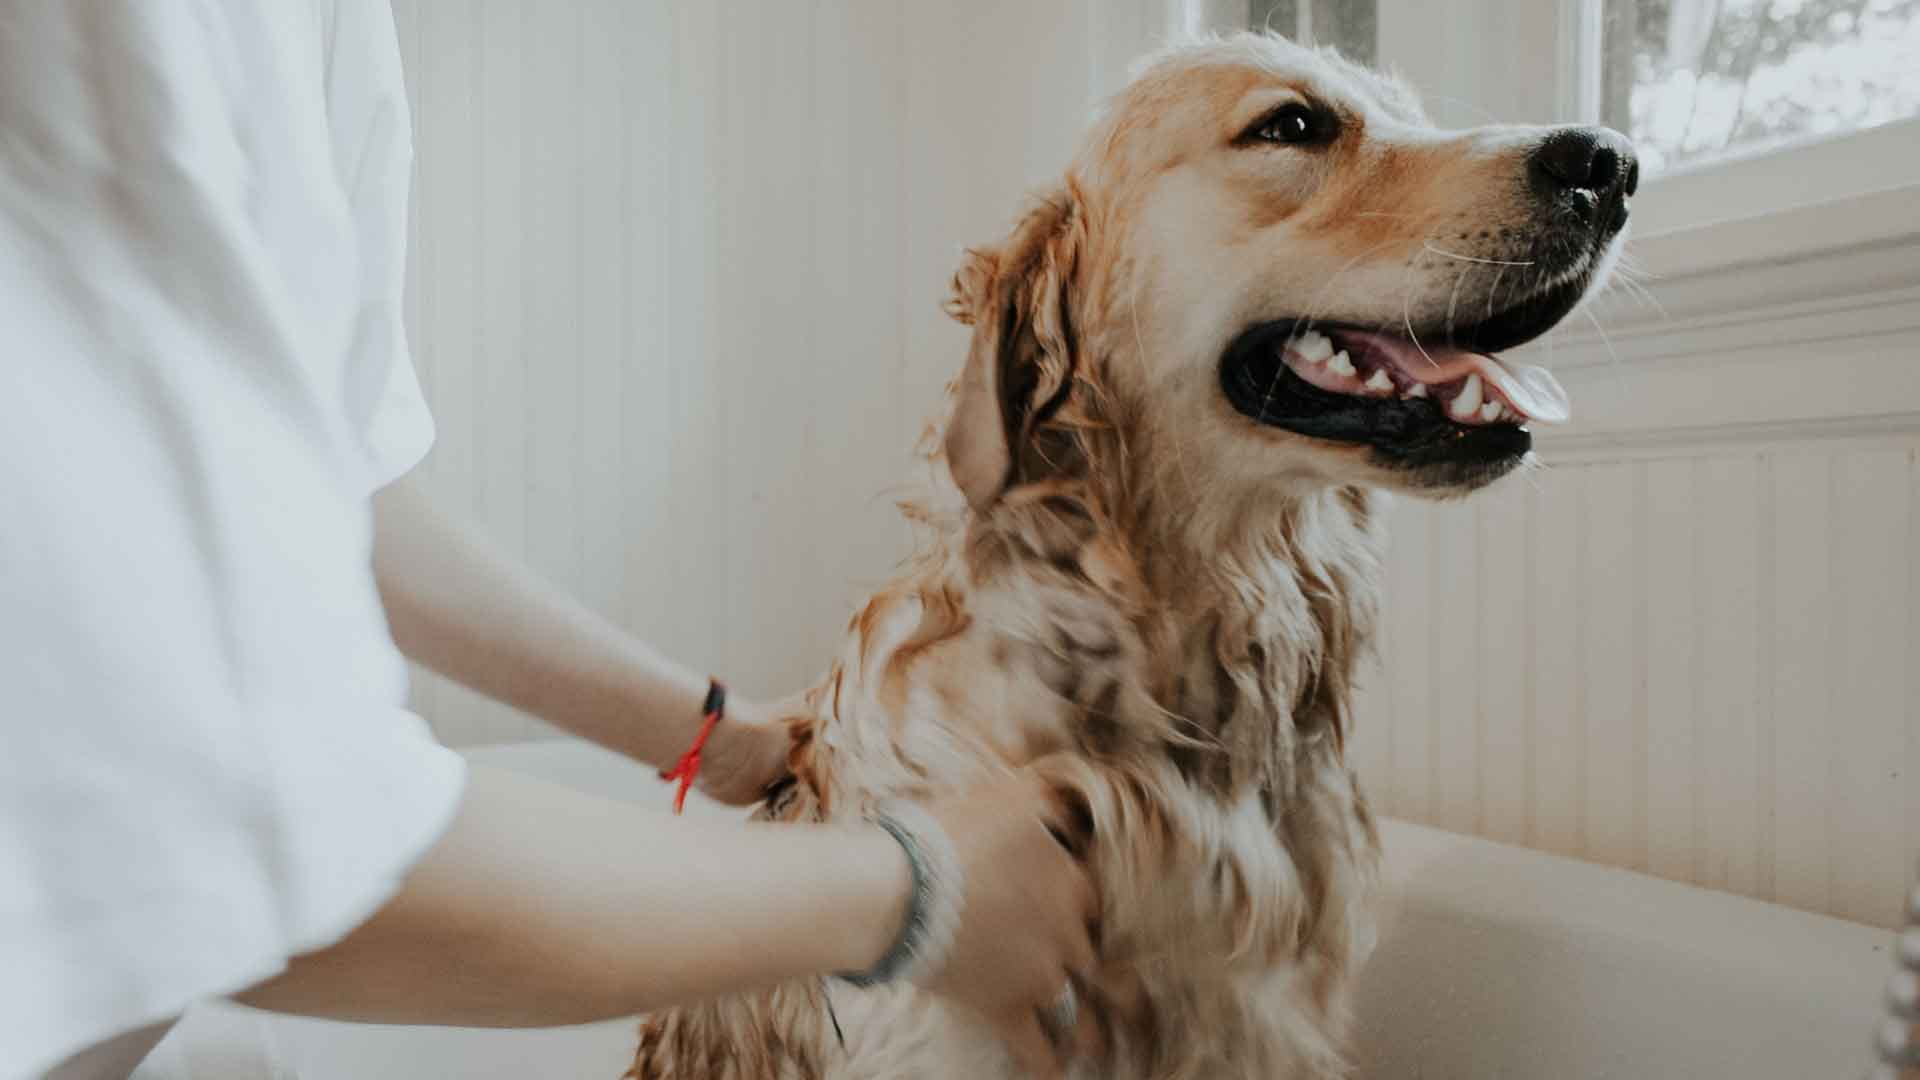 20 Best Flea Treatments For Dogs 2021: Reviews & Buying Guide